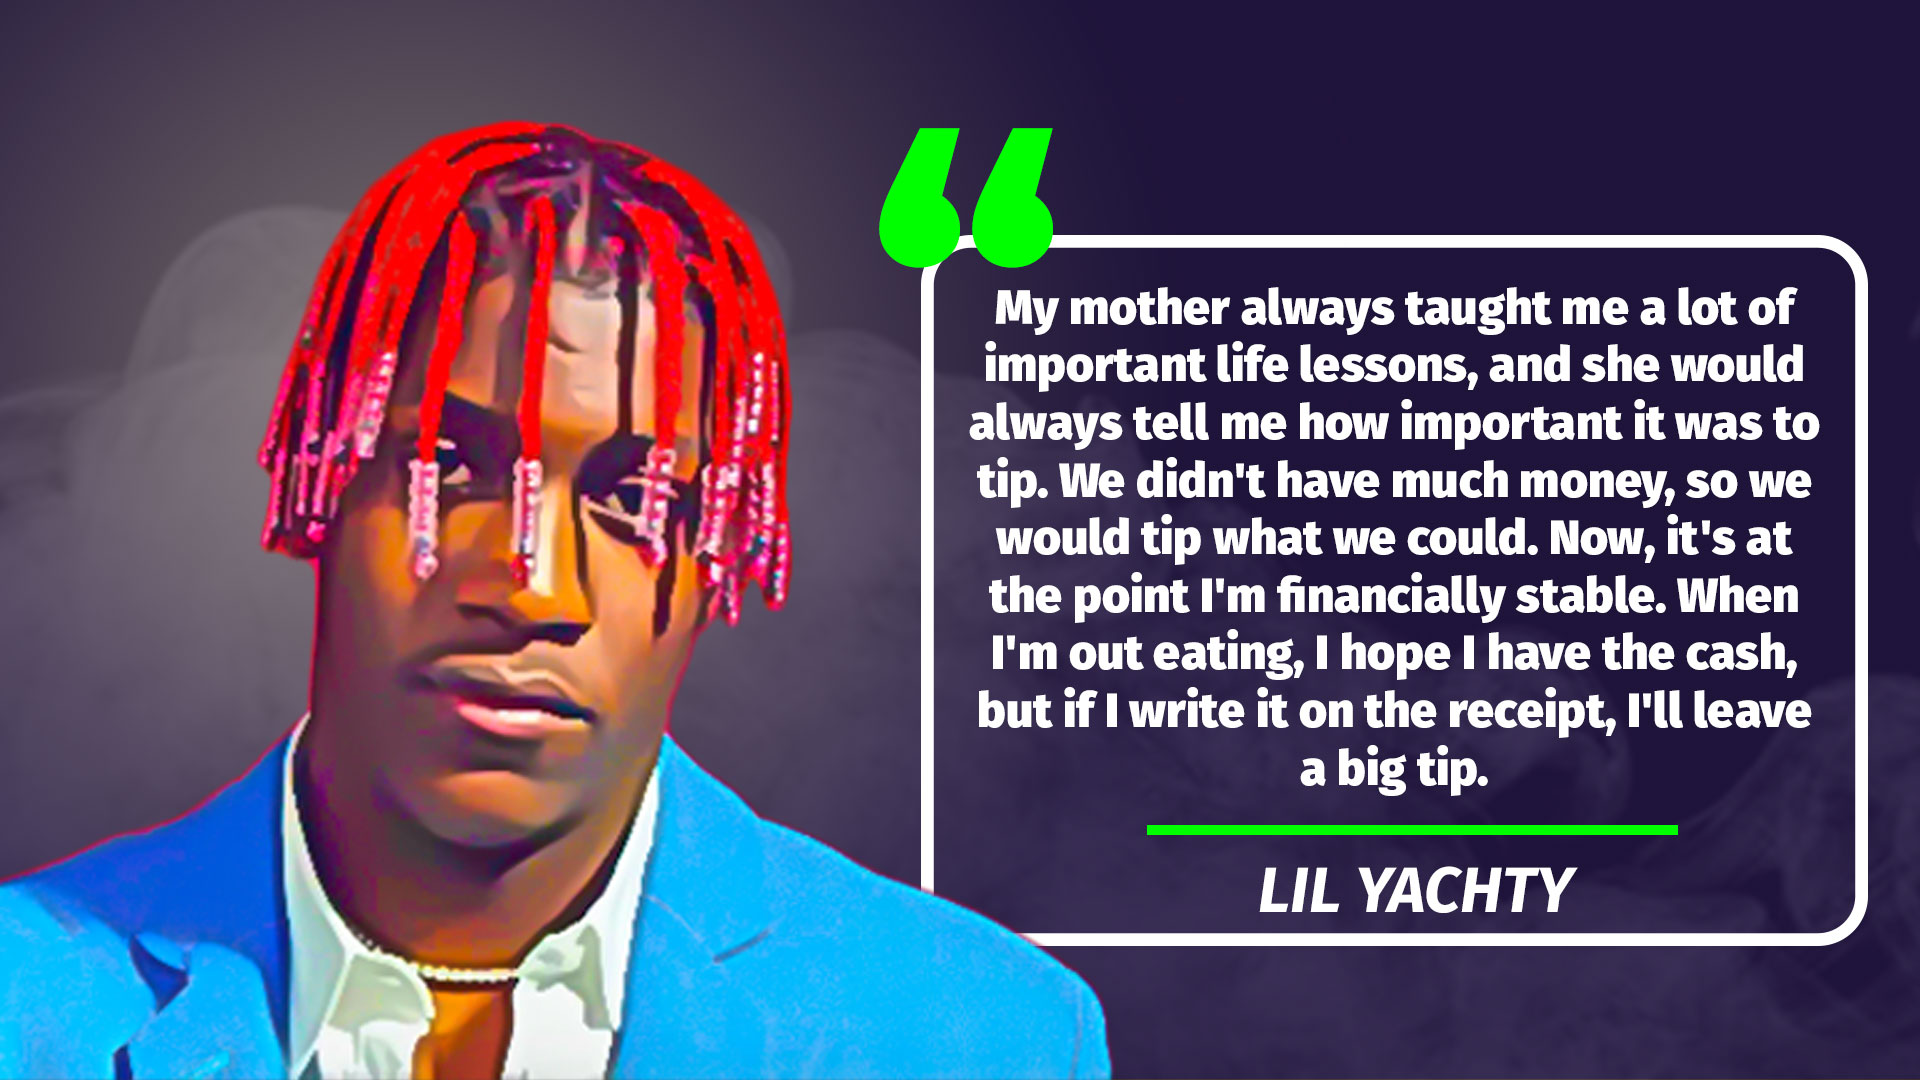 LIL-YACHTY-QUOTE-1